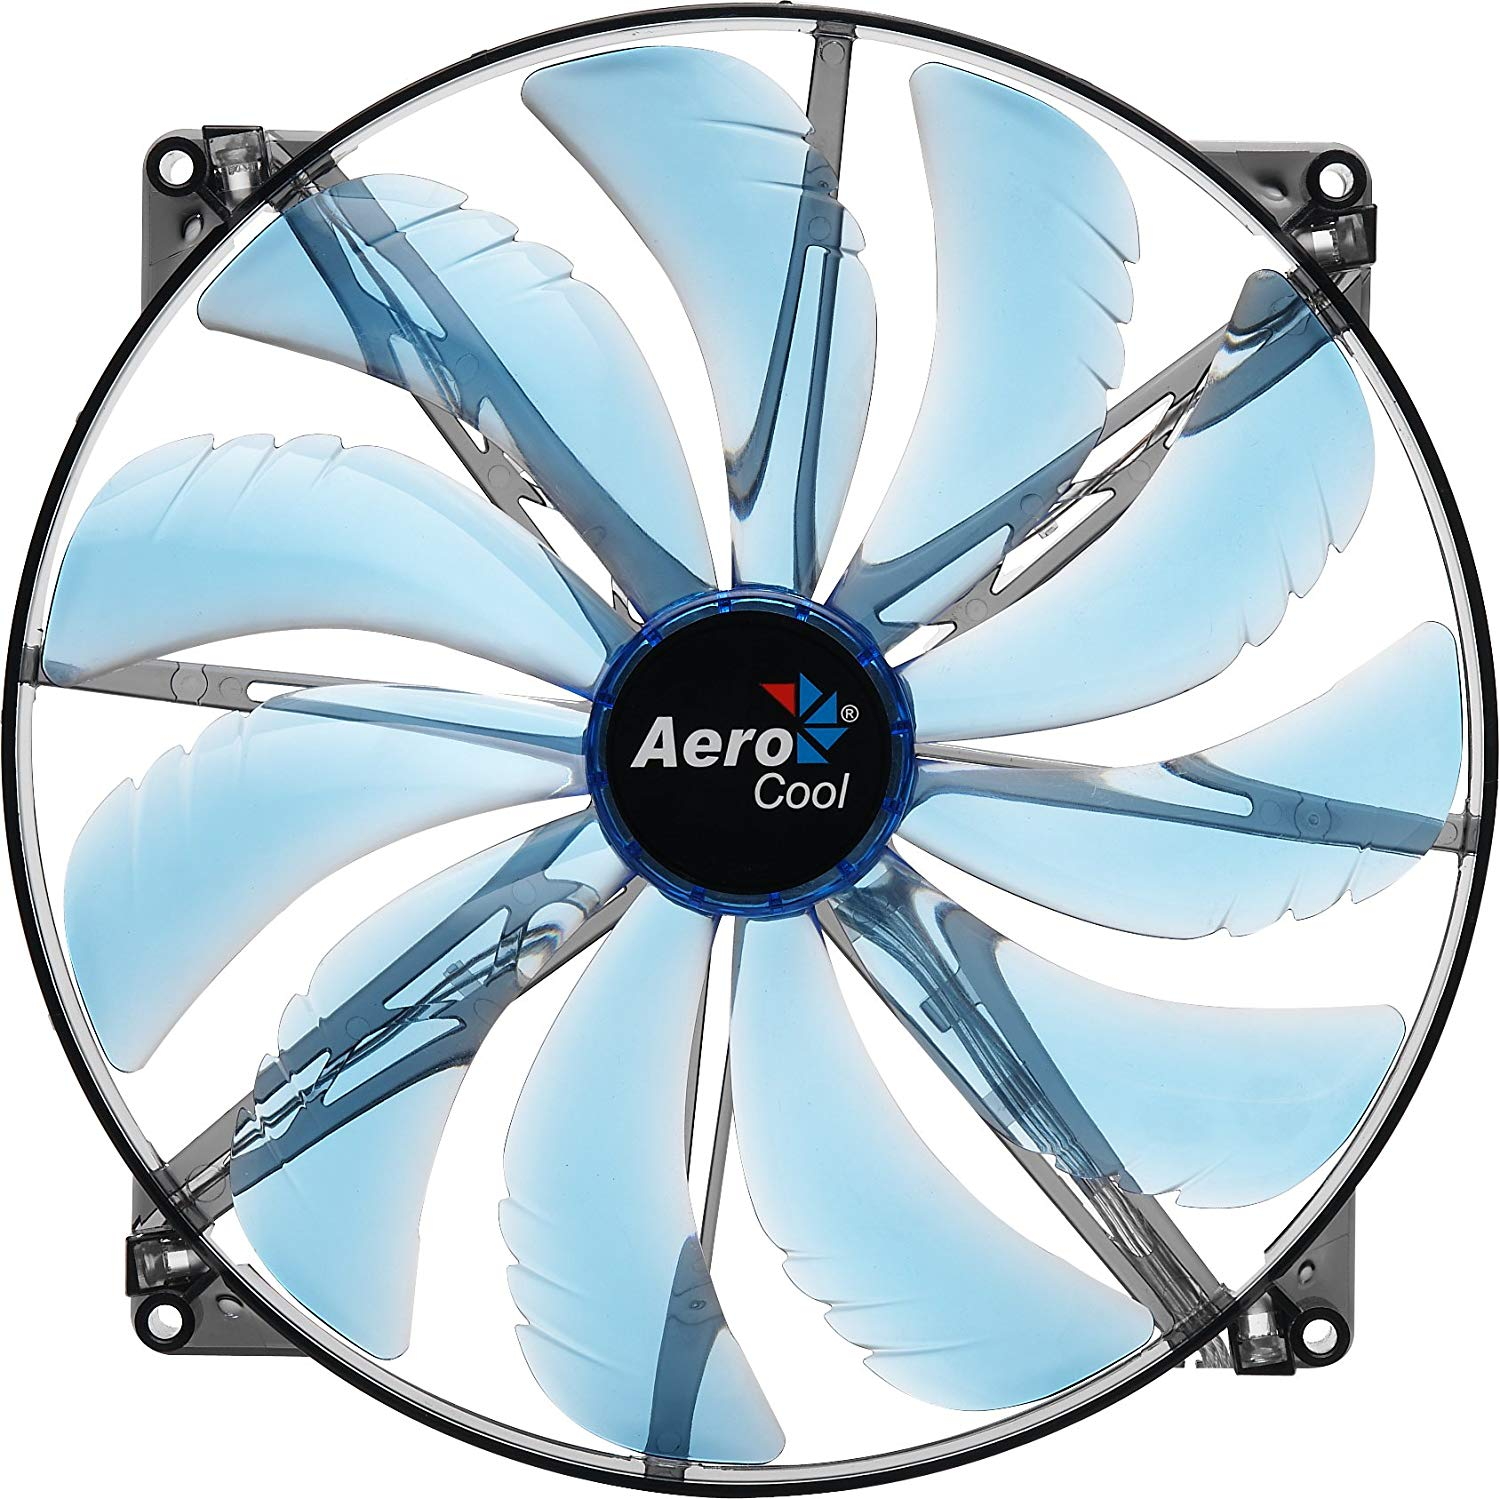 AeroCool Silent Master LED Cooling Refrigerator Fan for RV